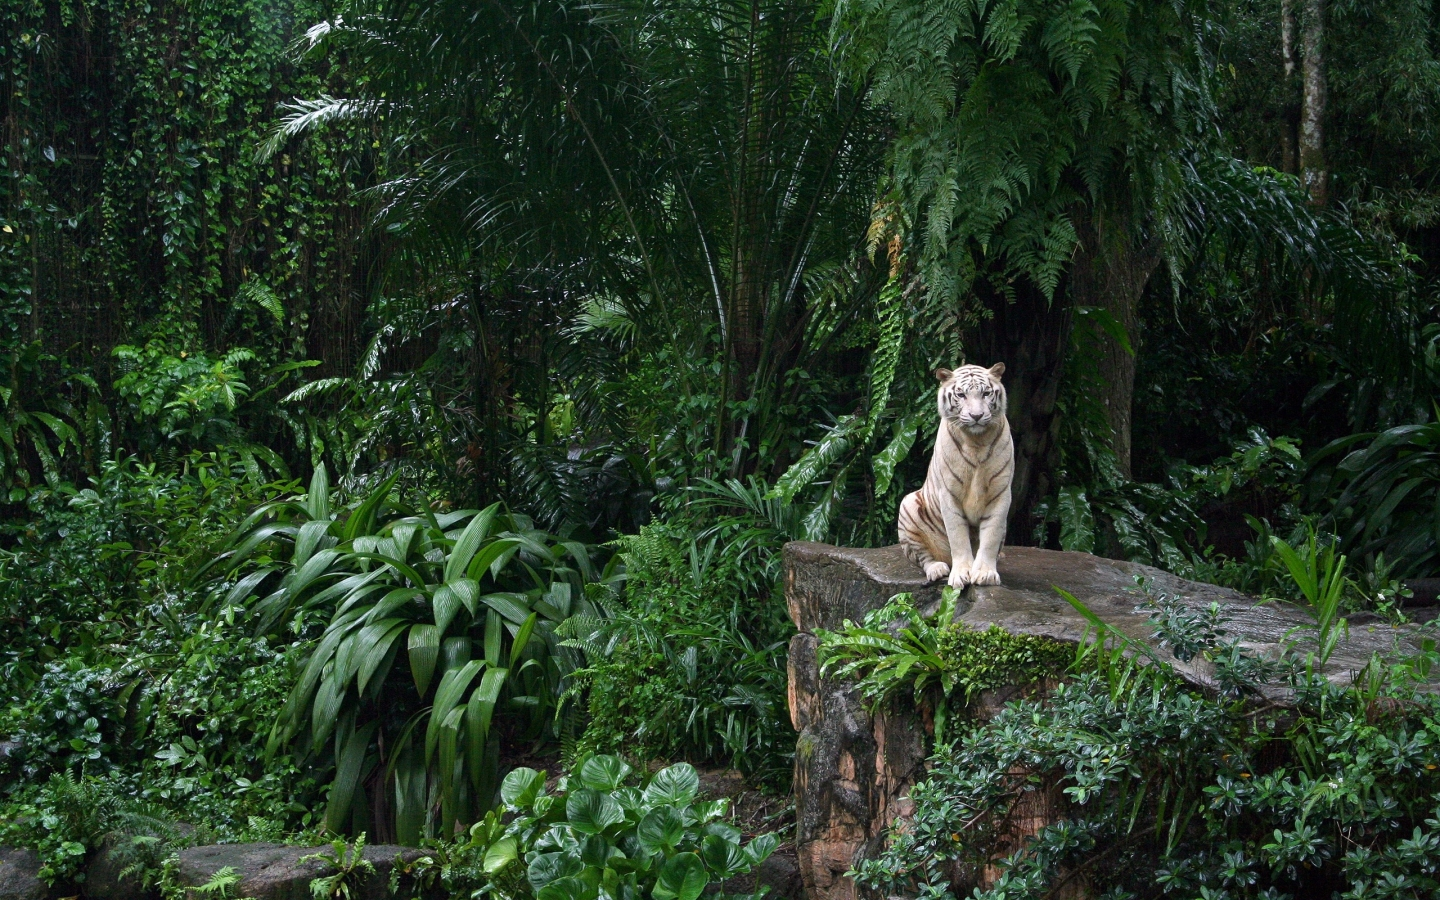 https://2.bp.blogspot.com/-0bBjVPcv6RI/TlsKIpO5U1I/AAAAAAAAAAk/iGgaFlNSCEg/s1600/White-Tiger-In-Jungle_1440x900_1363.jpg